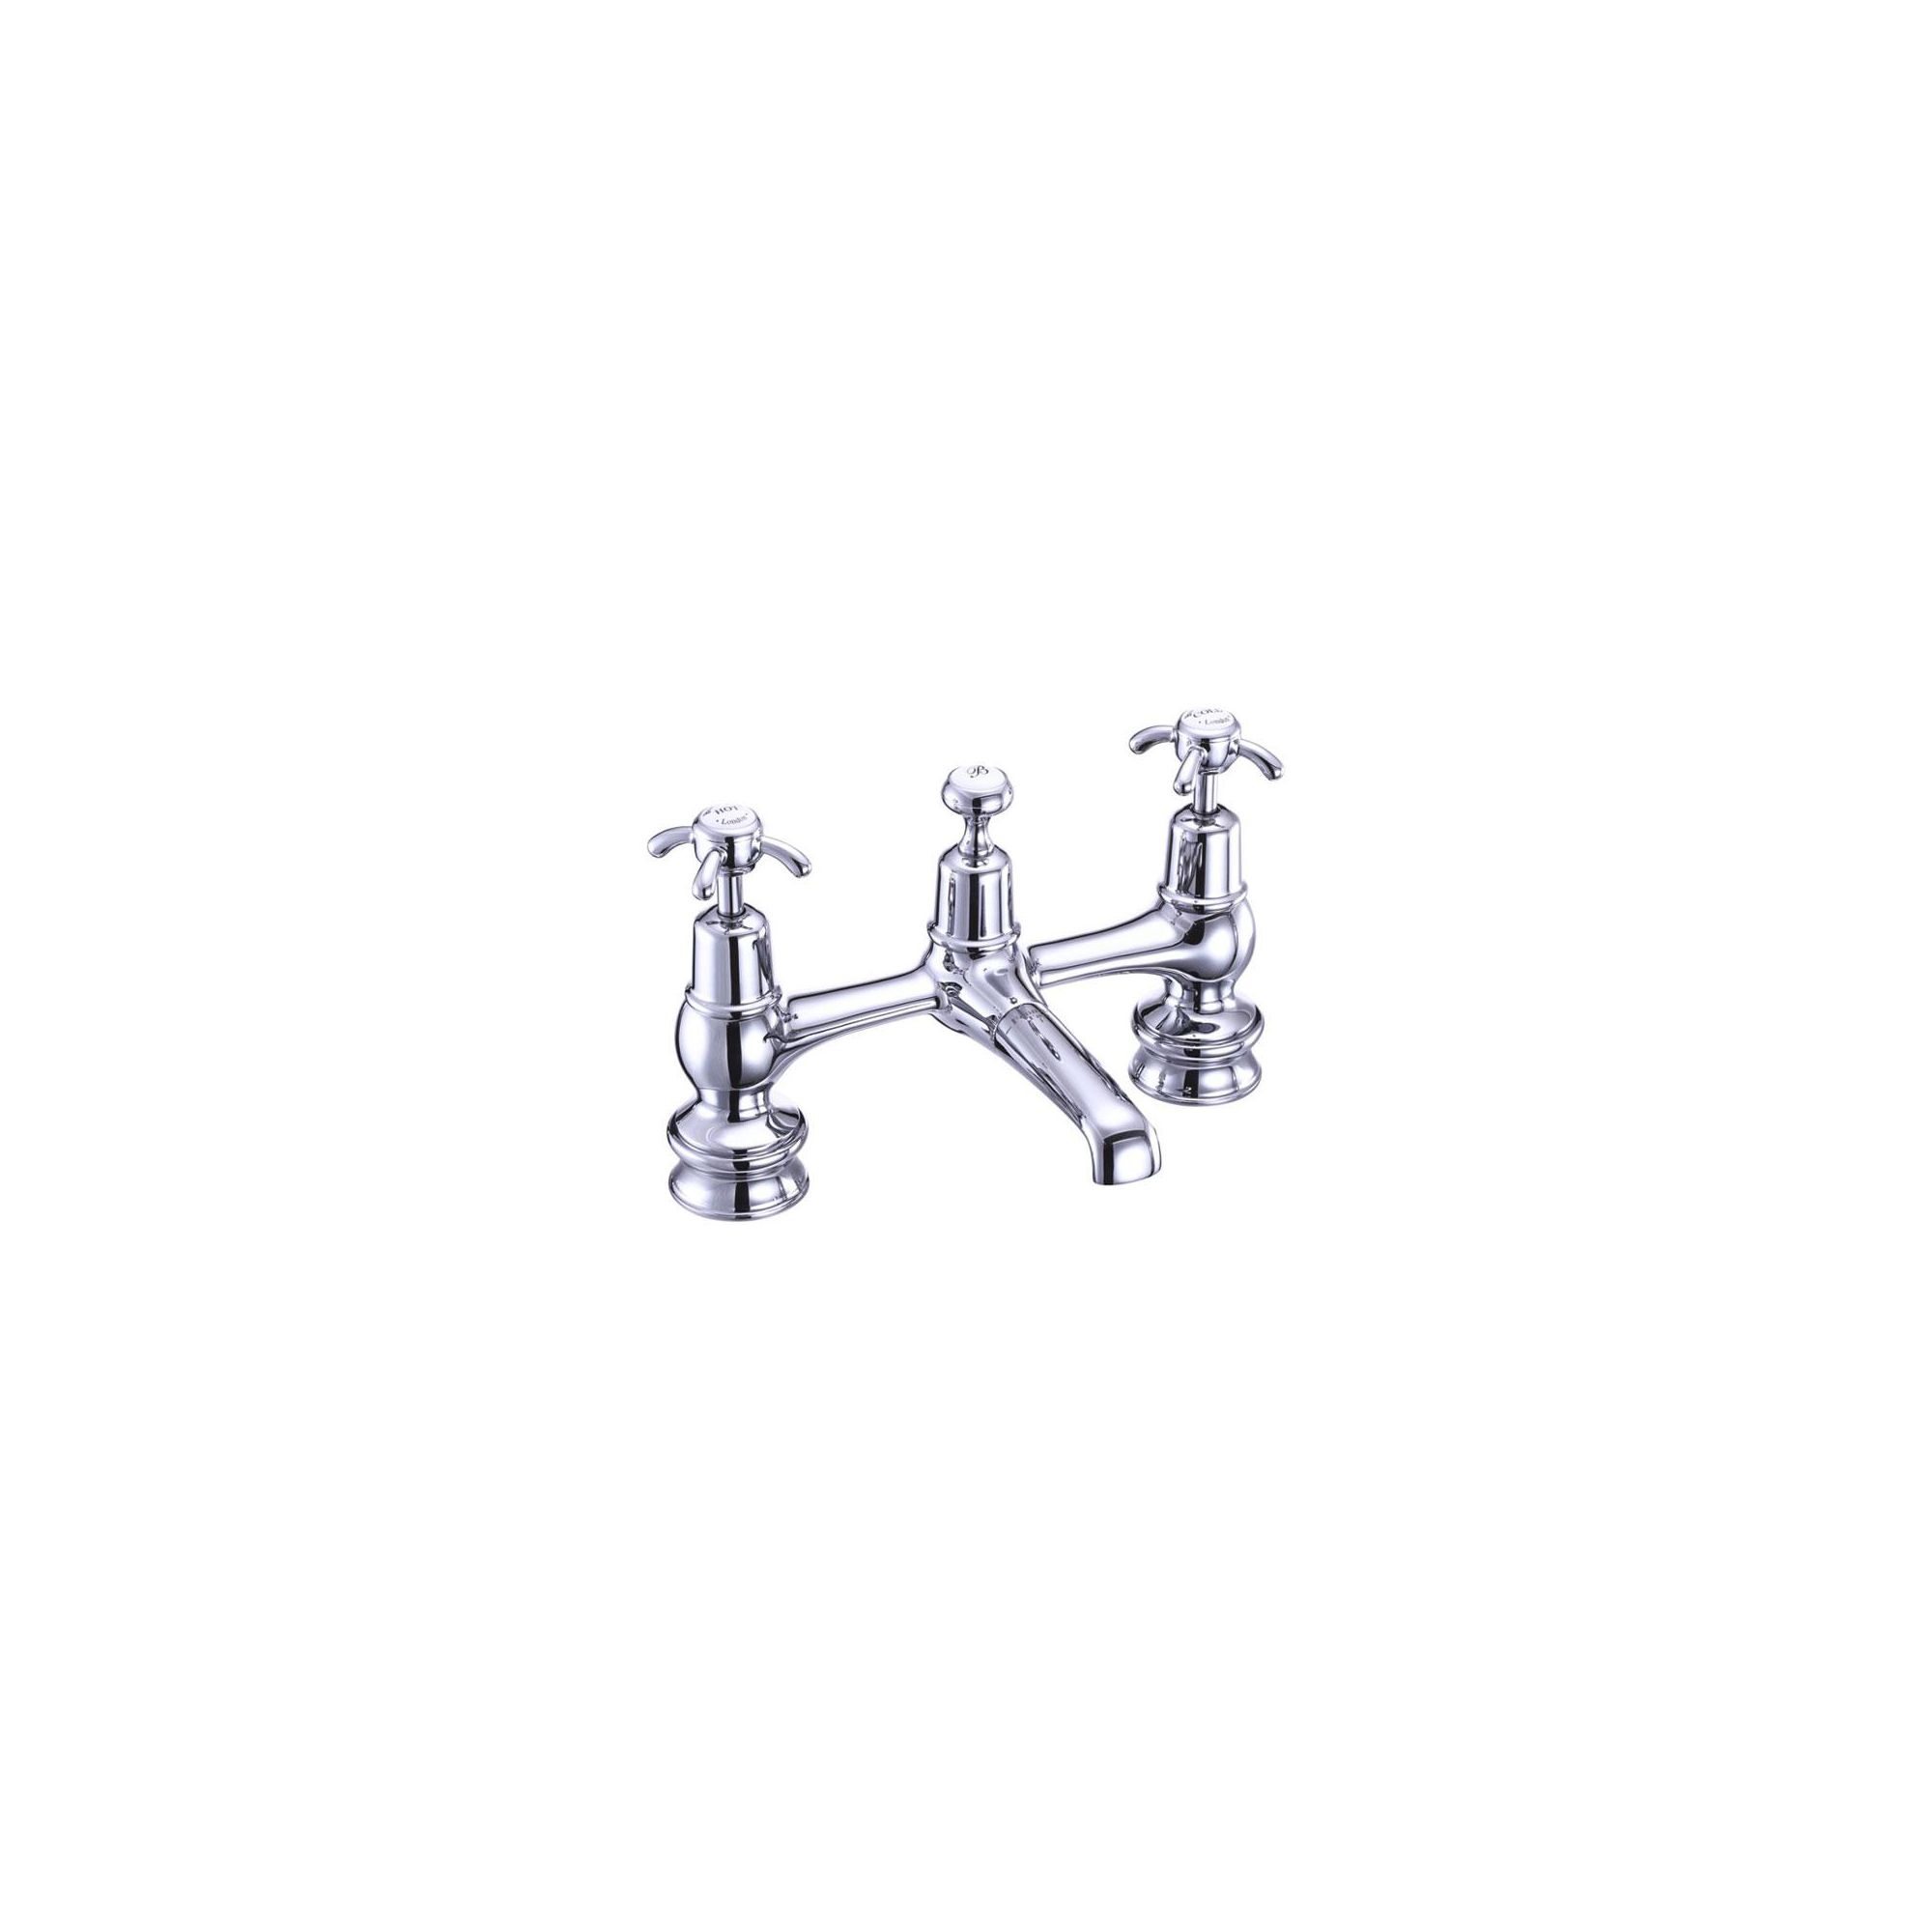 Burlington Anglesey Regent 2 Hole Bridge Basin Mixer Tap, Dual Handle, Chrome at Tesco Direct